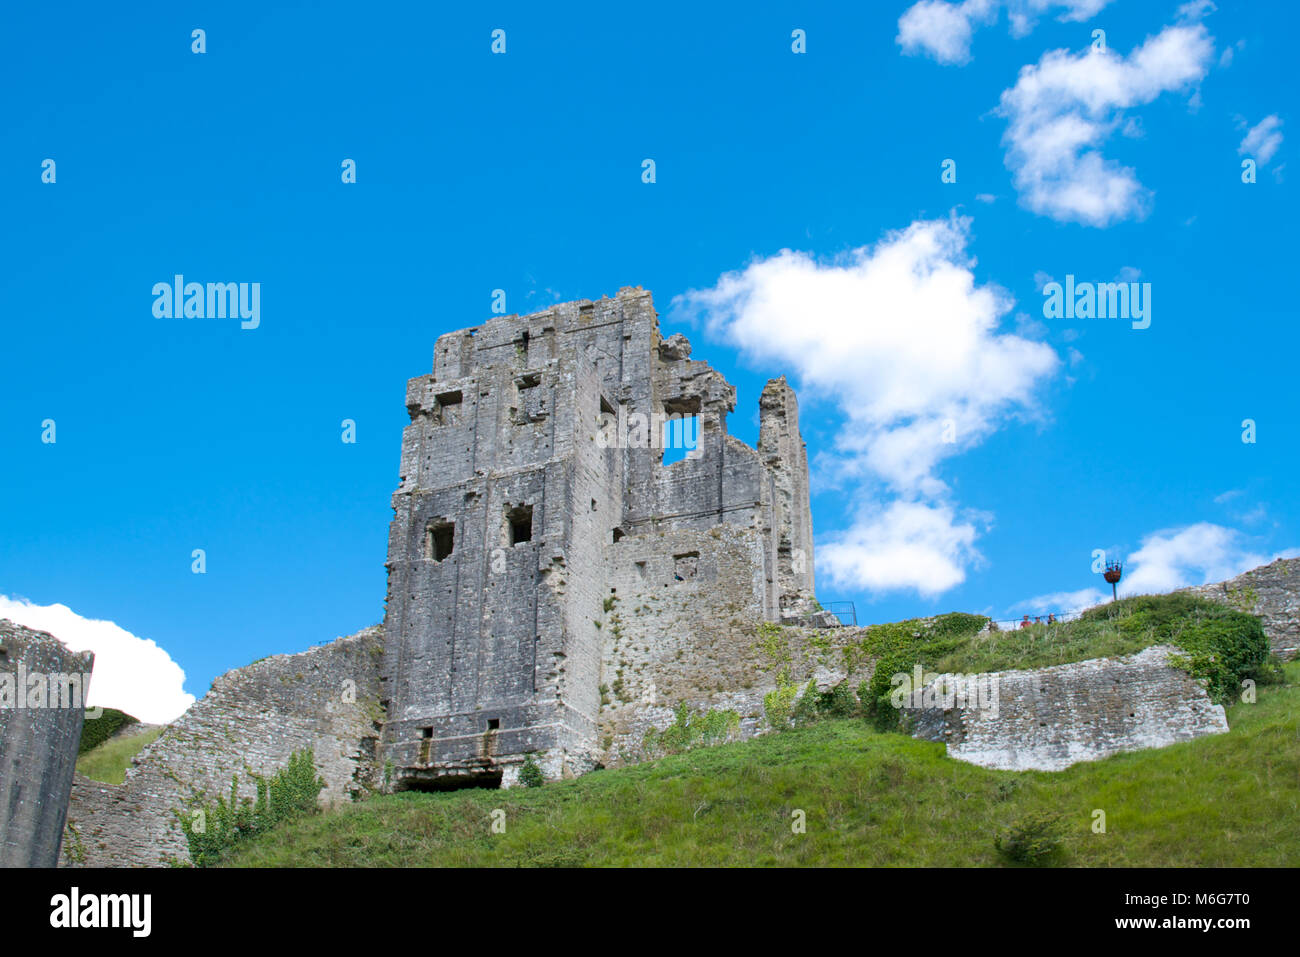 Corfe Castle, Purbeck Hills, Dorest, England - Stock Image